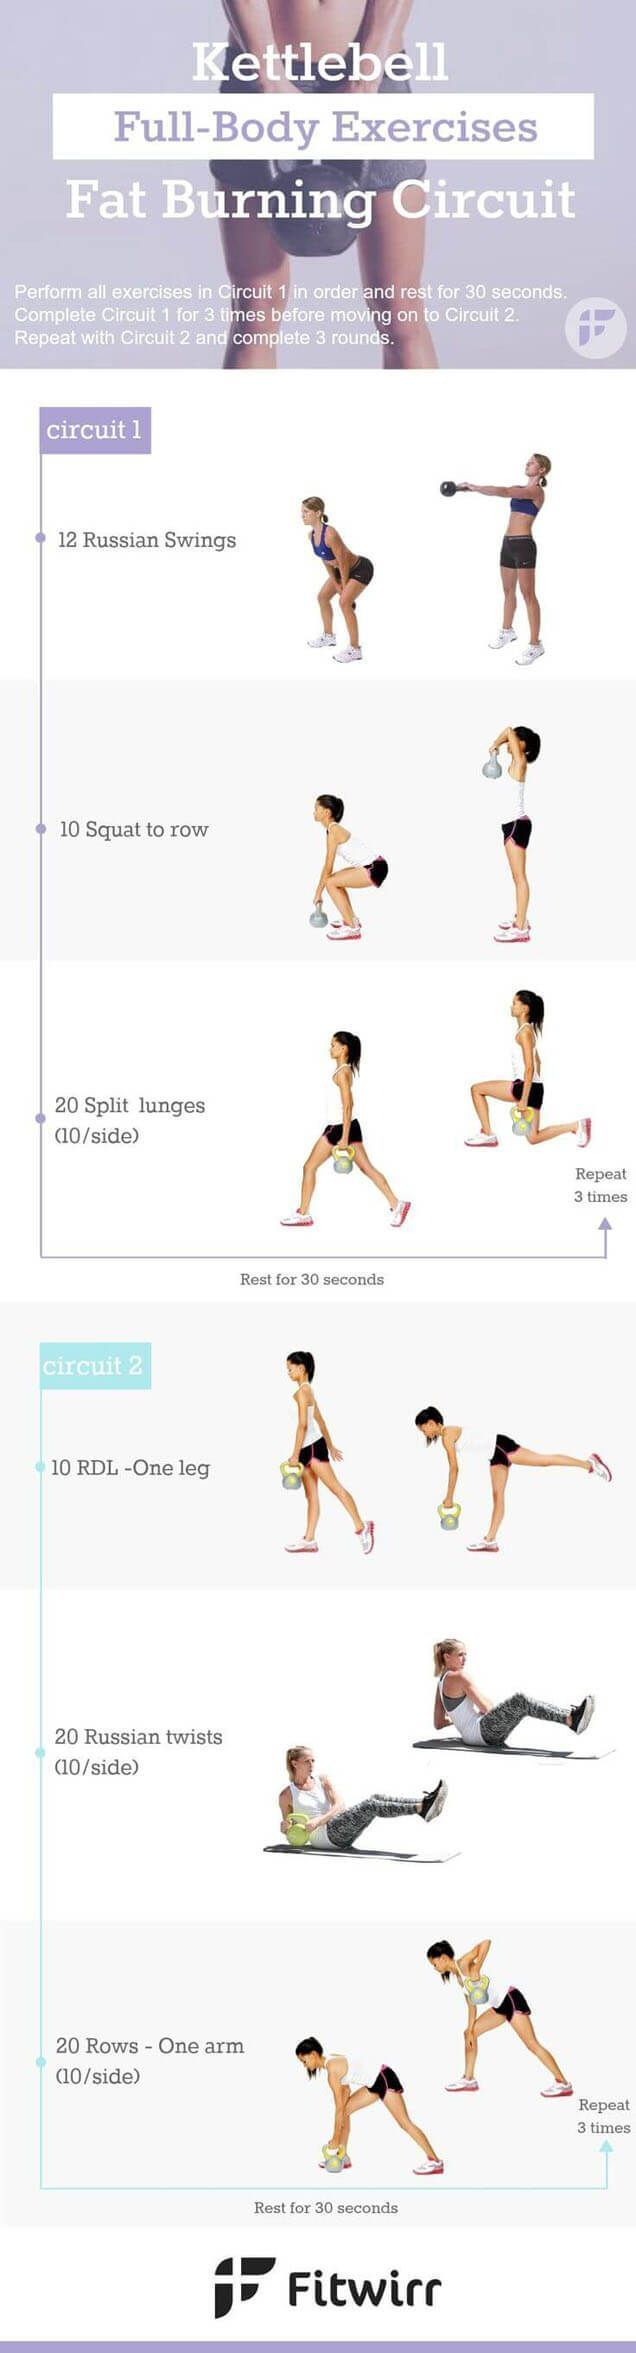 6 Kettlebell FAT BLASTING Workout Circuits. | Posted By: http://healthymega.com Being overweight or clinically obese is a condition that's caused by having a high calorie intake and low energy expenditure. In order to lose weight, you can either reduce your calorie intake, or else exercise regularly and reduce your calorie intake at the same time. It's always more beneficial to exercise as well. Many people don't exercise correctly when they want to lose weight. They think if they do